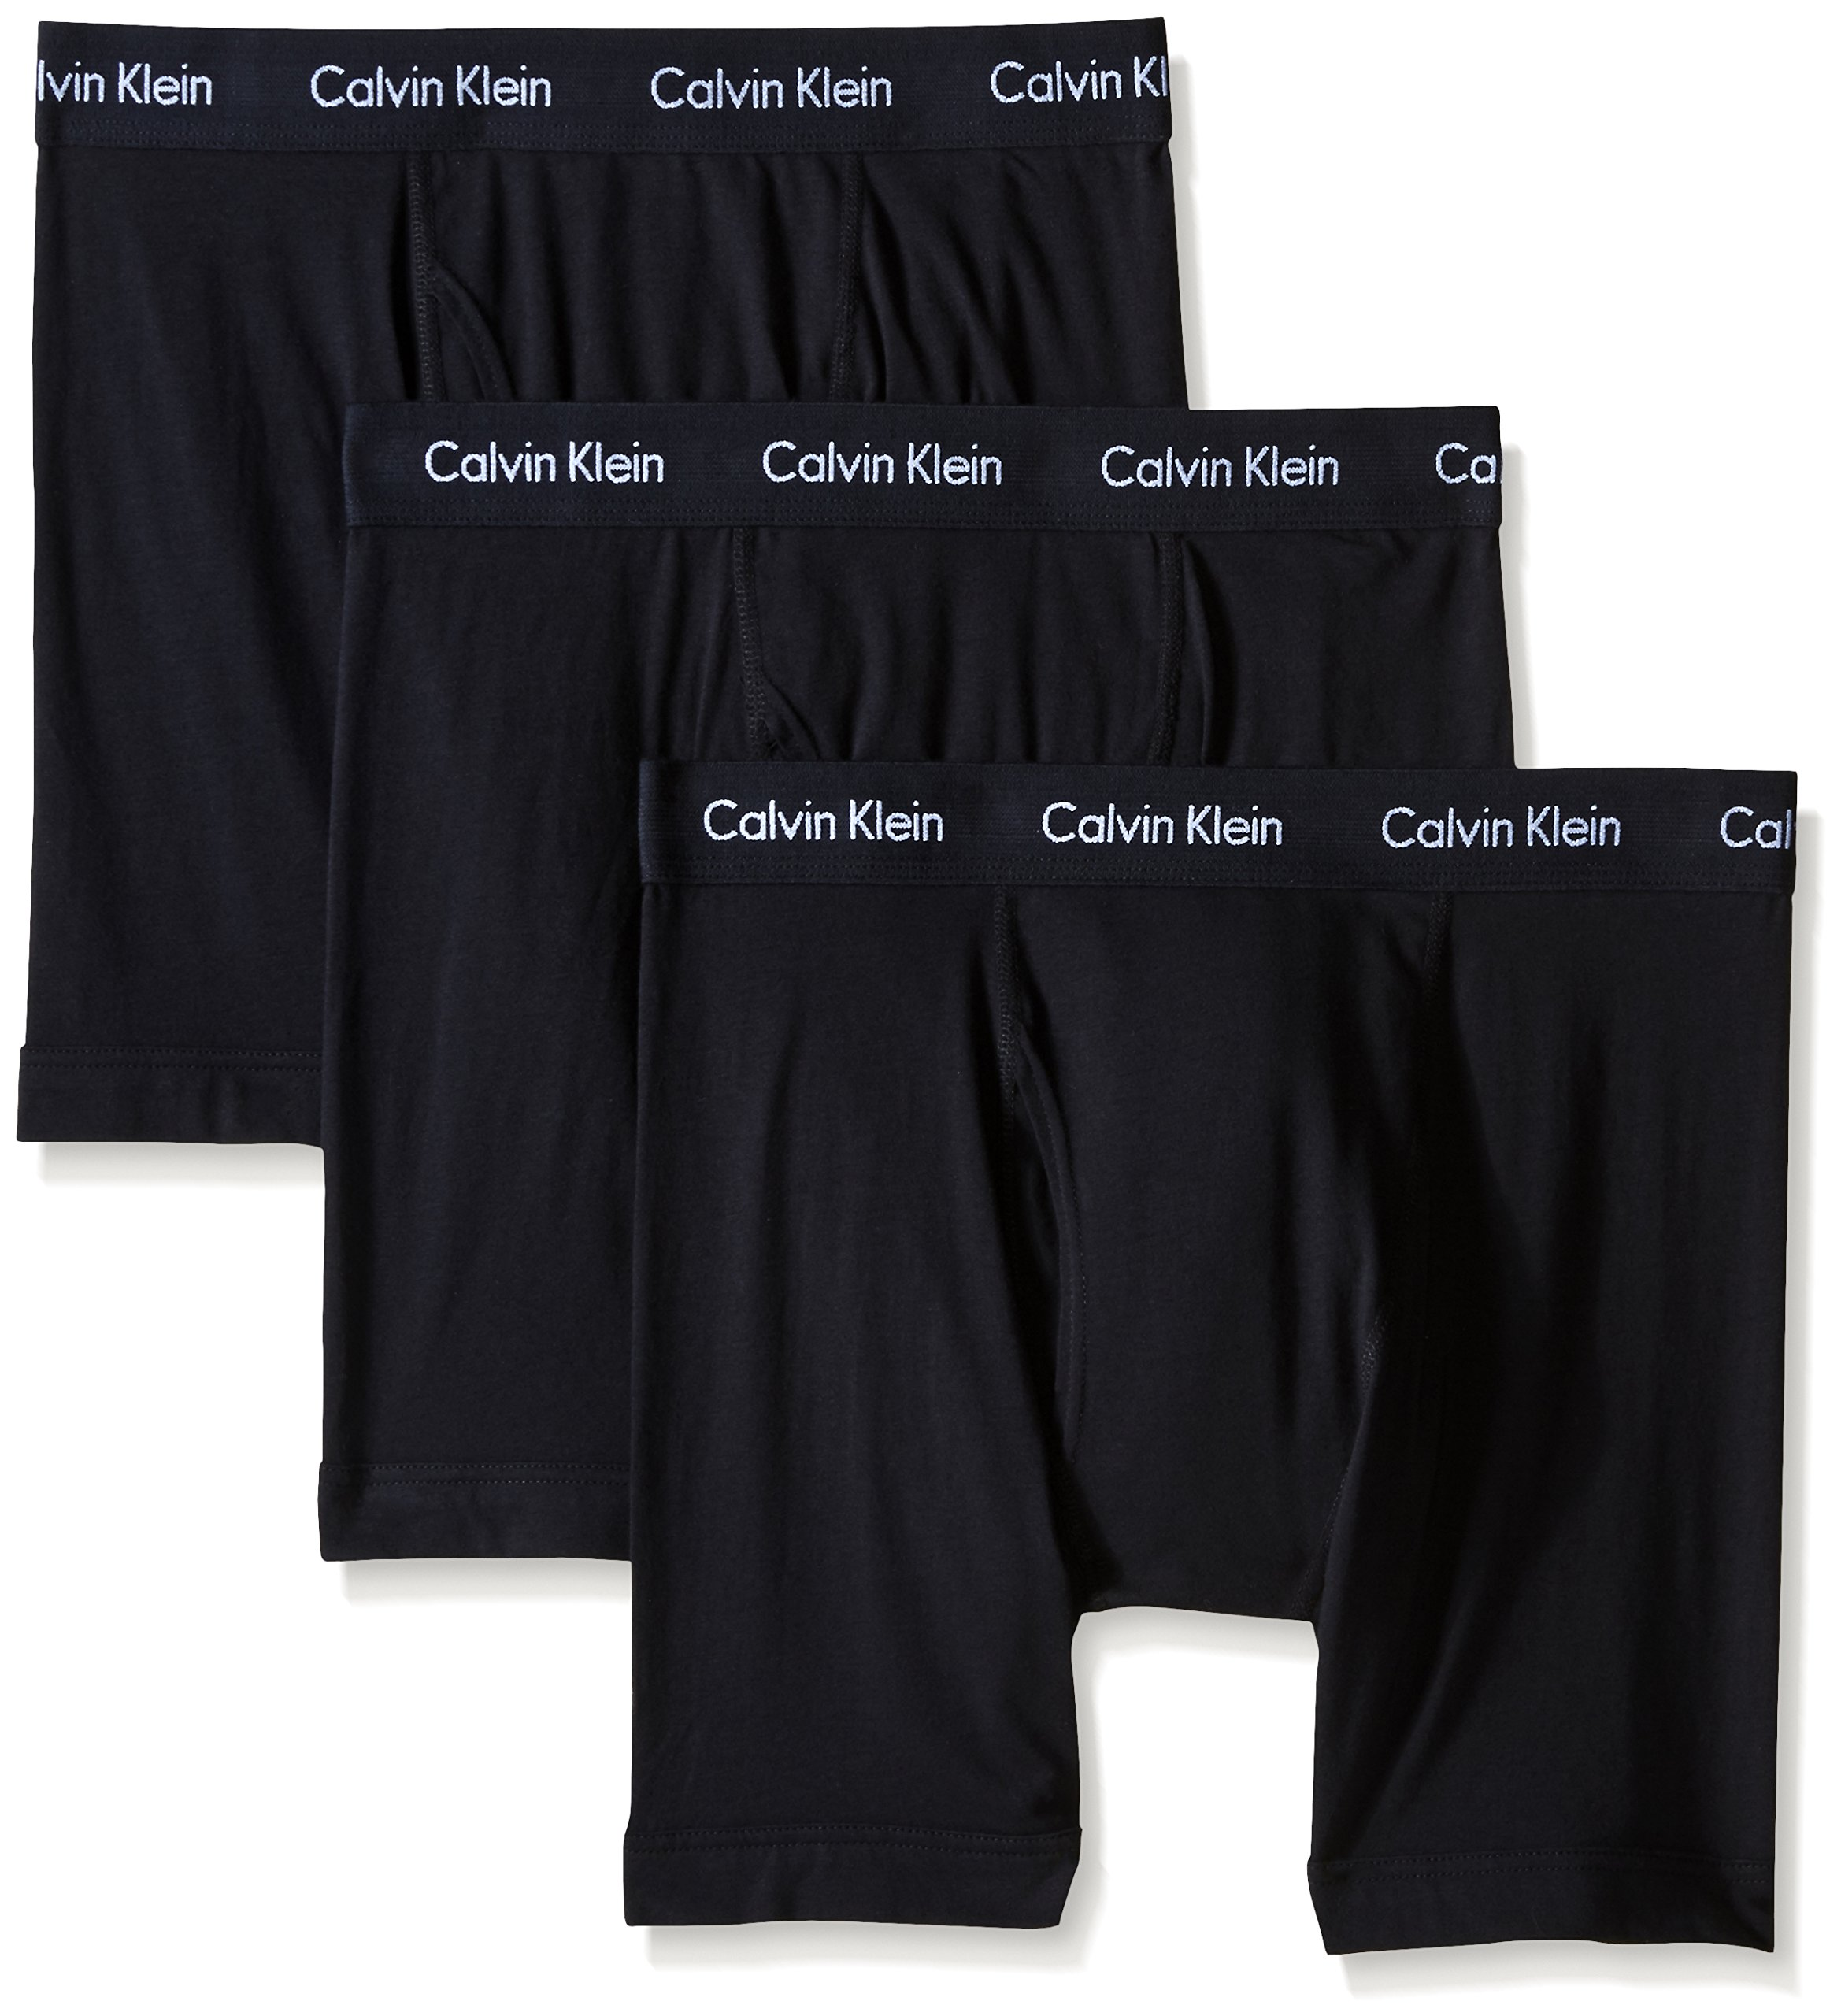 Calvin Klein Men's Underwear Cotton Stretch 3 Pack Boxer Briefs, Black, Large